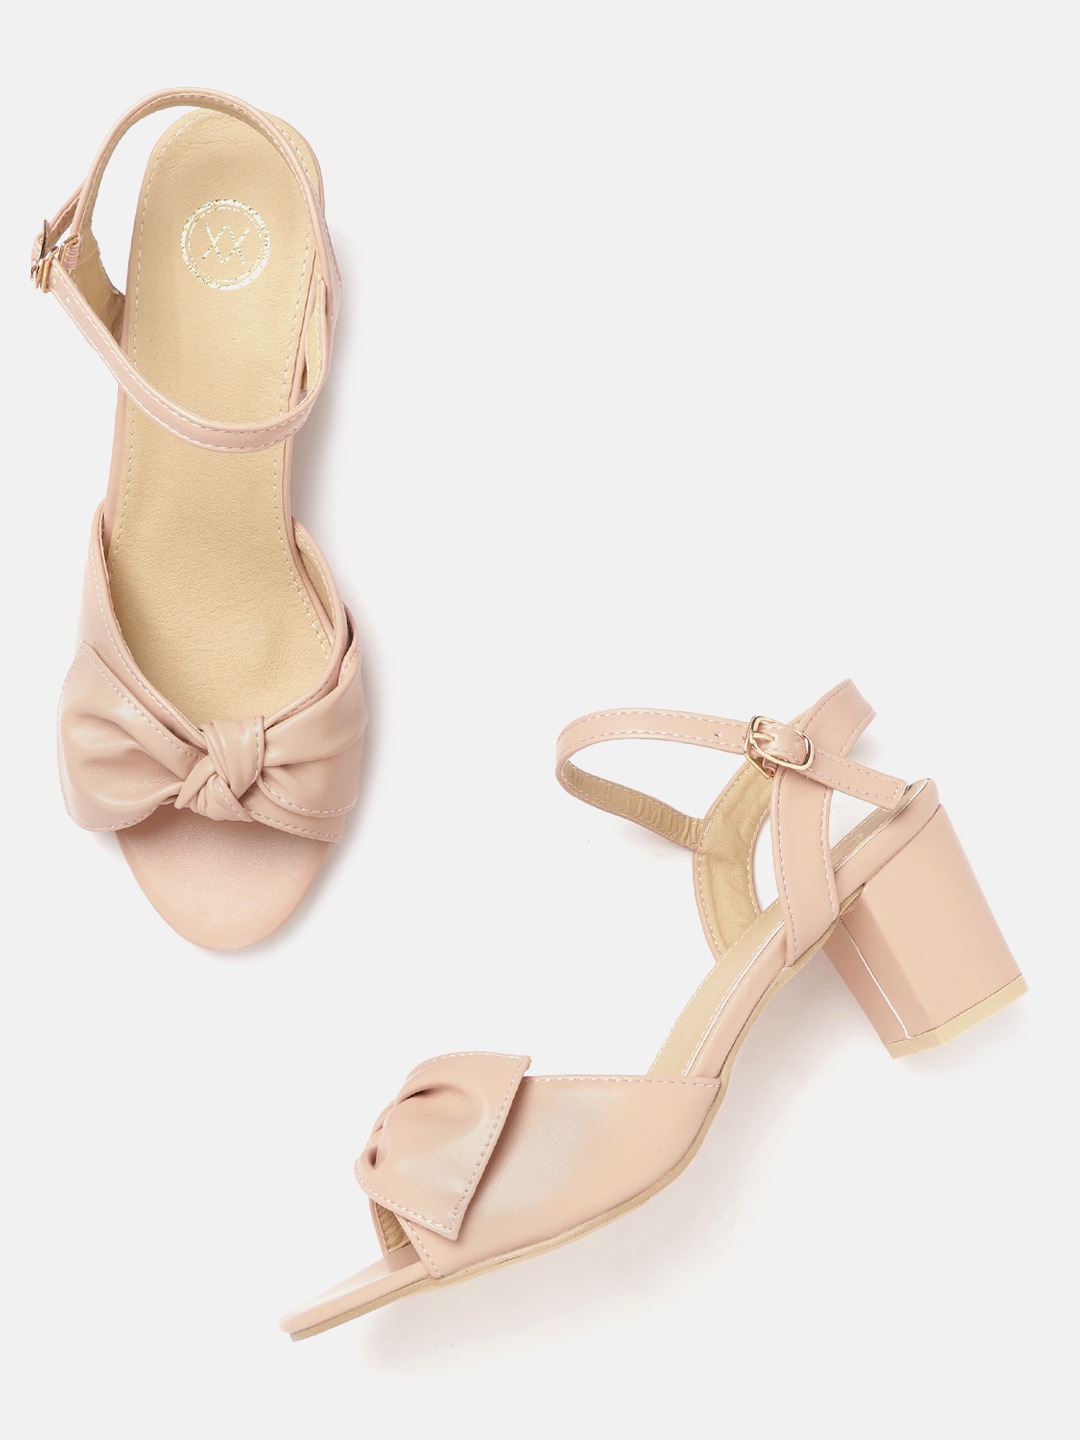 Heels and Wedges-Bowing To Style Block Heels2